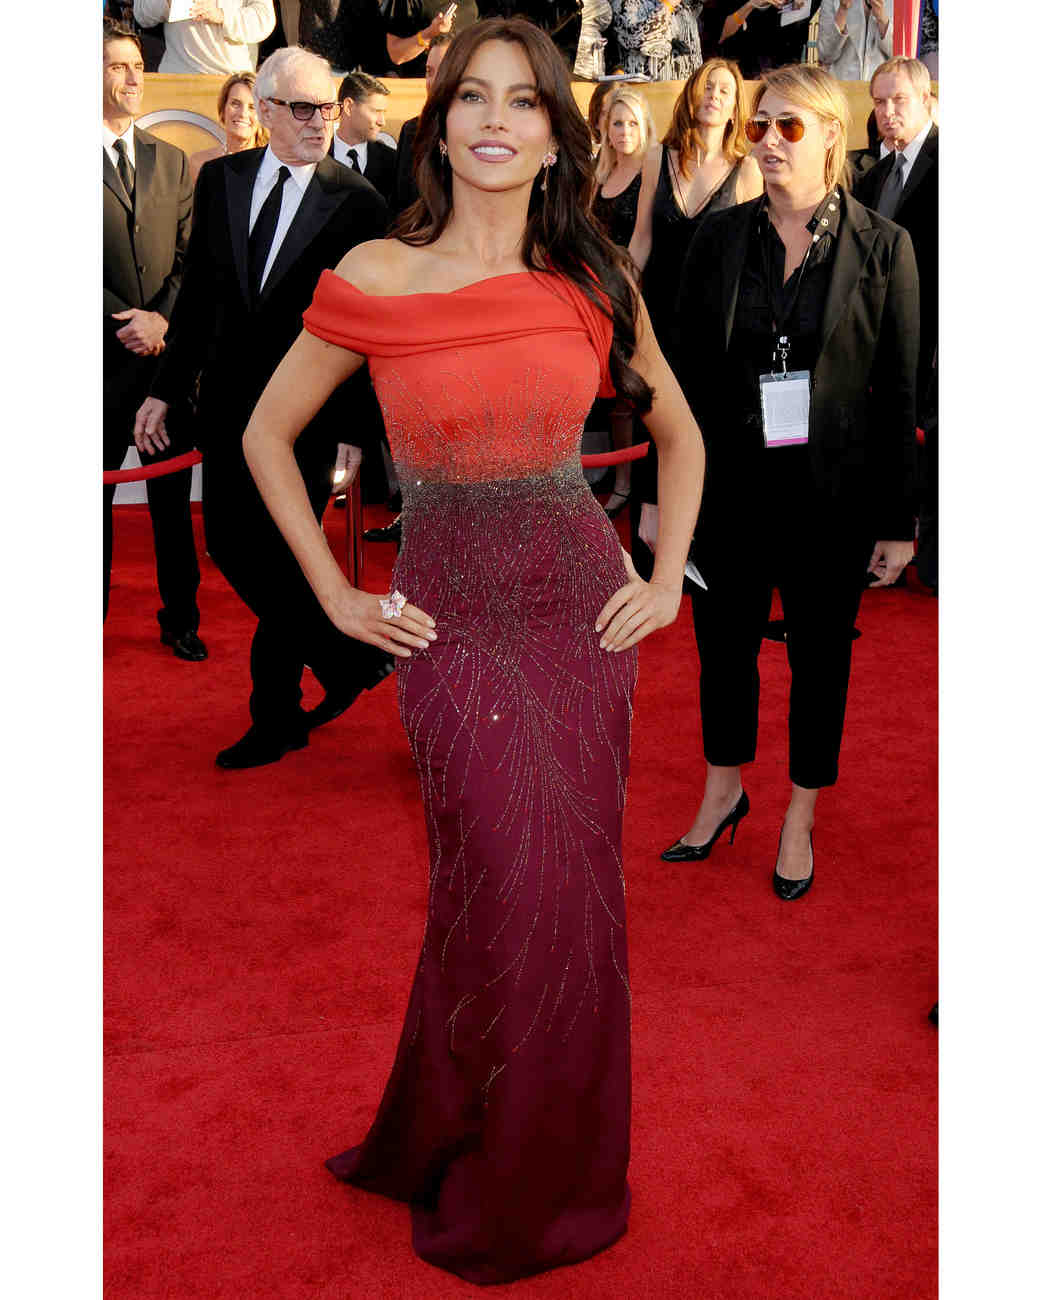 sofia-vergara-red-carpet-sag-awards-carolina-herrera-red-maroon-0815.jpg